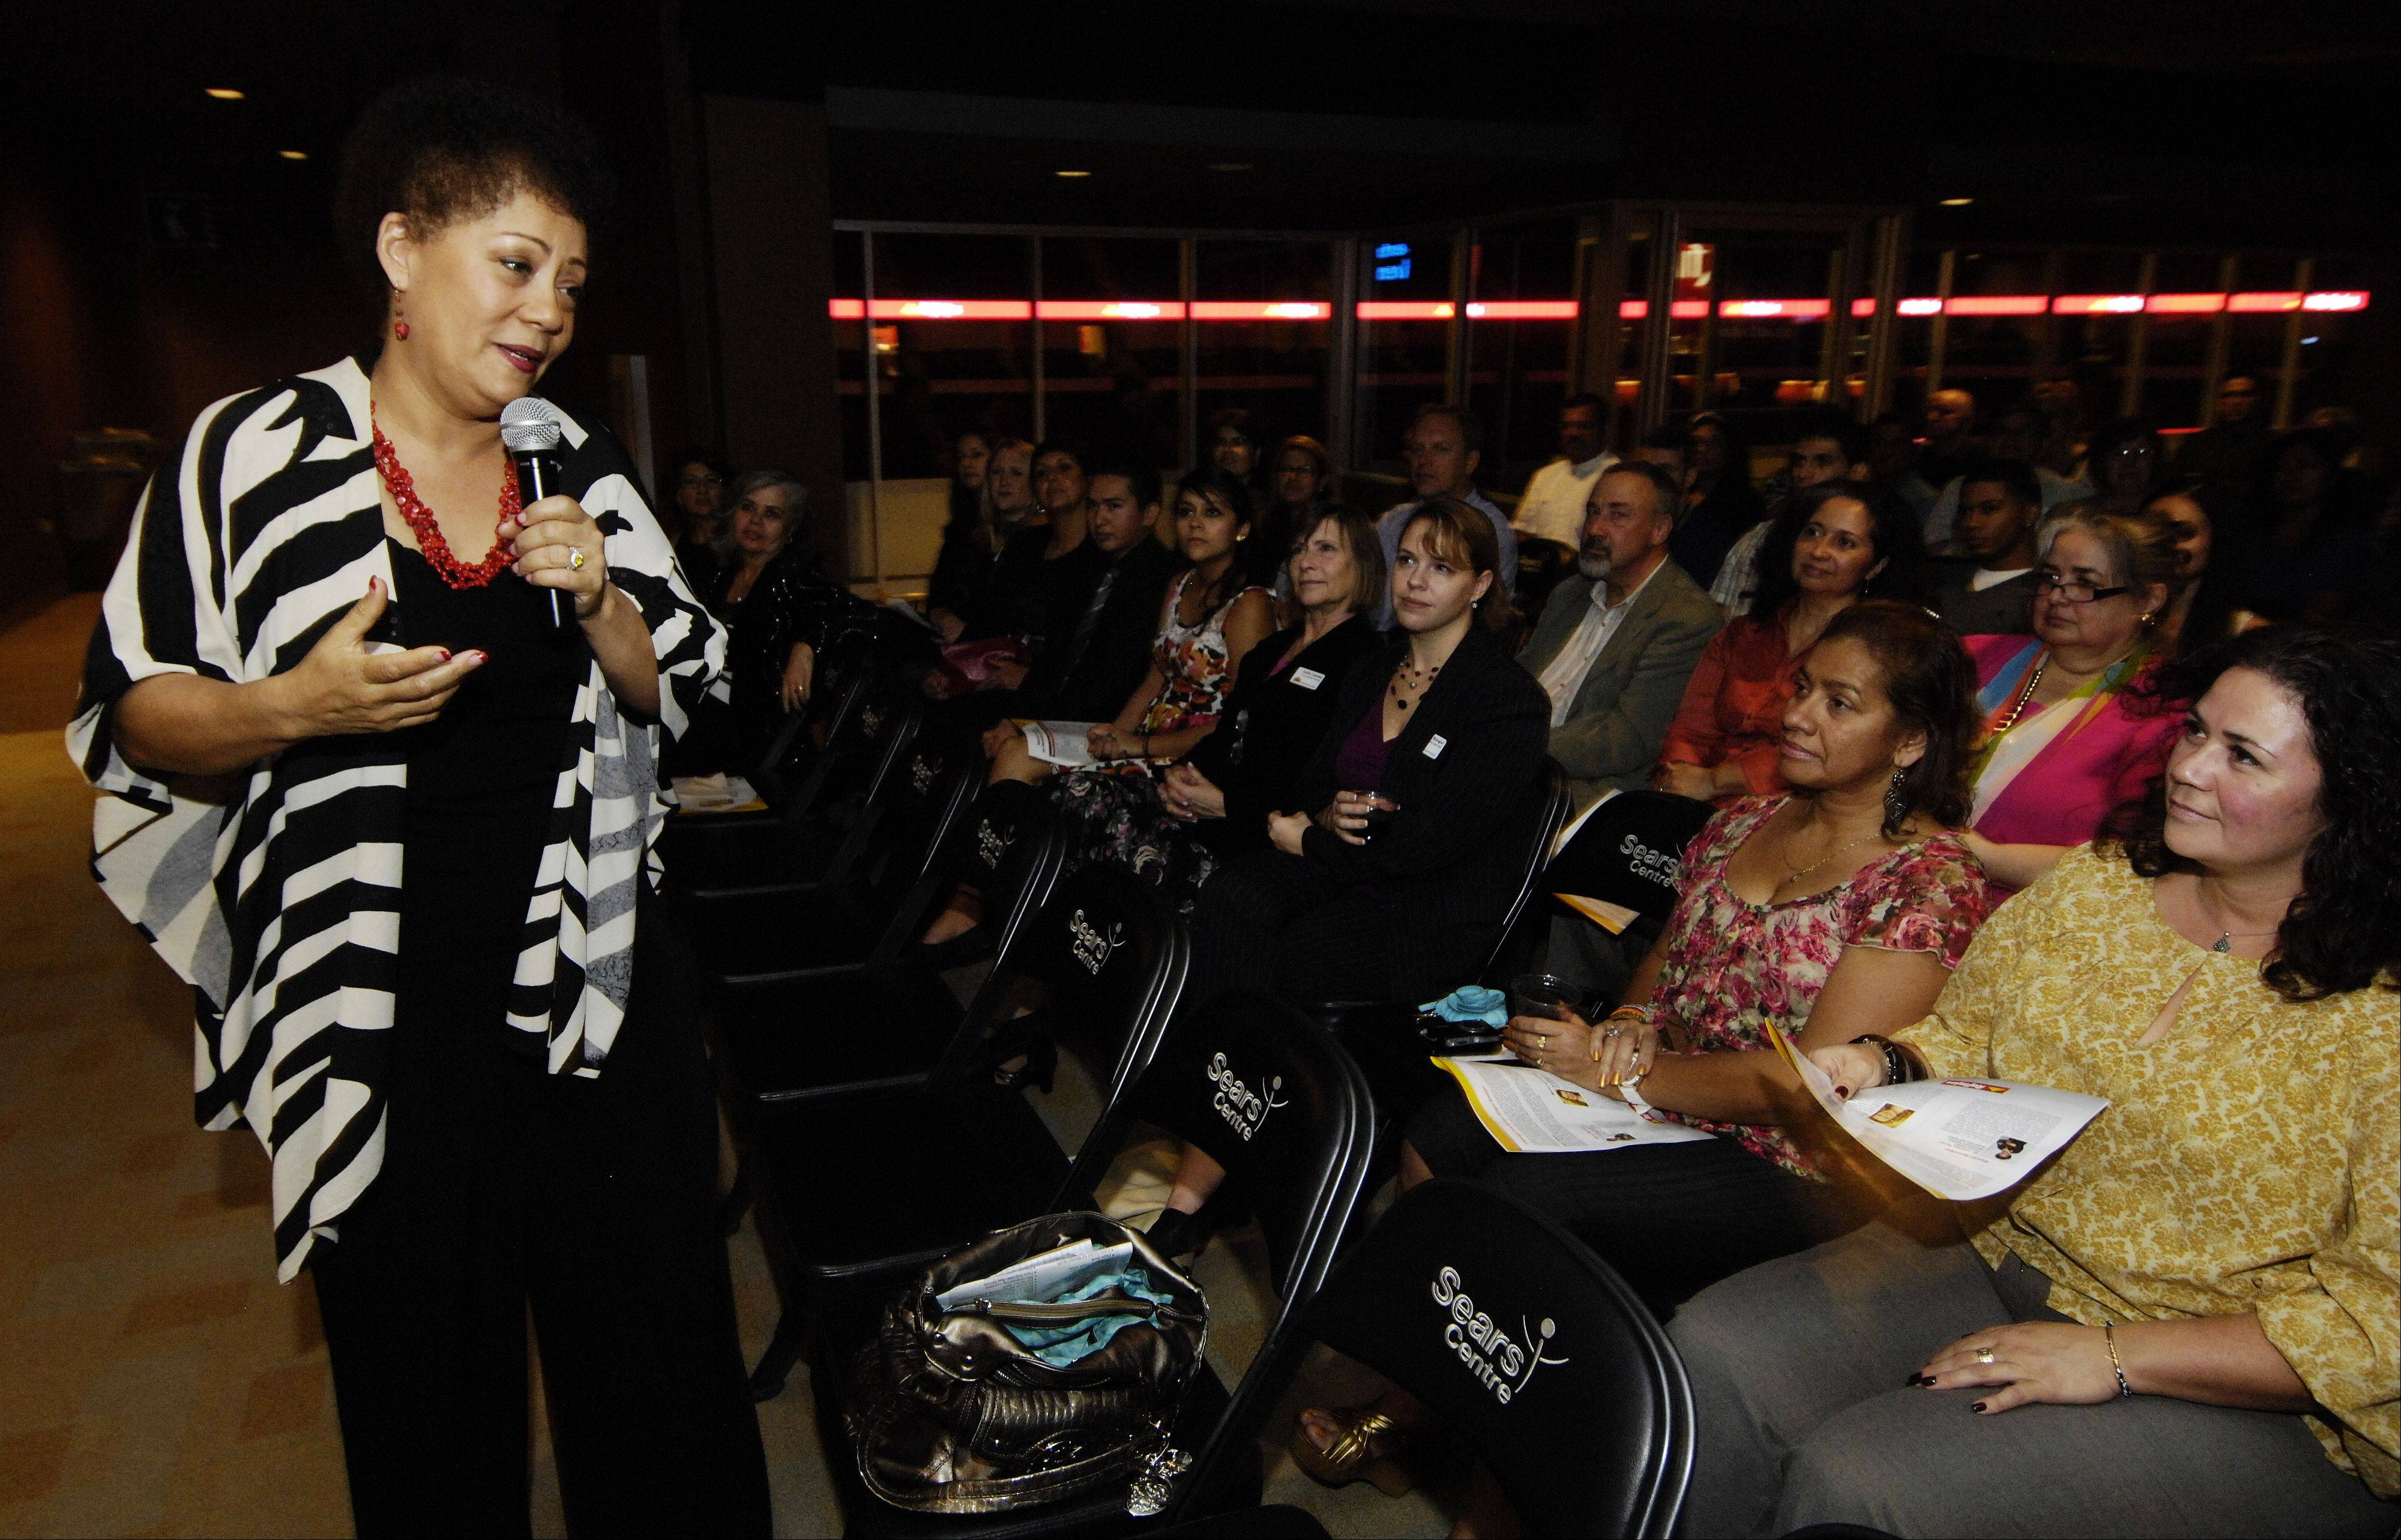 Author and researcher Dr. Lourdes Ferrer speaks during the Reflejos Reflecting Excellence Awards at the Sears Centre in Hoffman Estates.